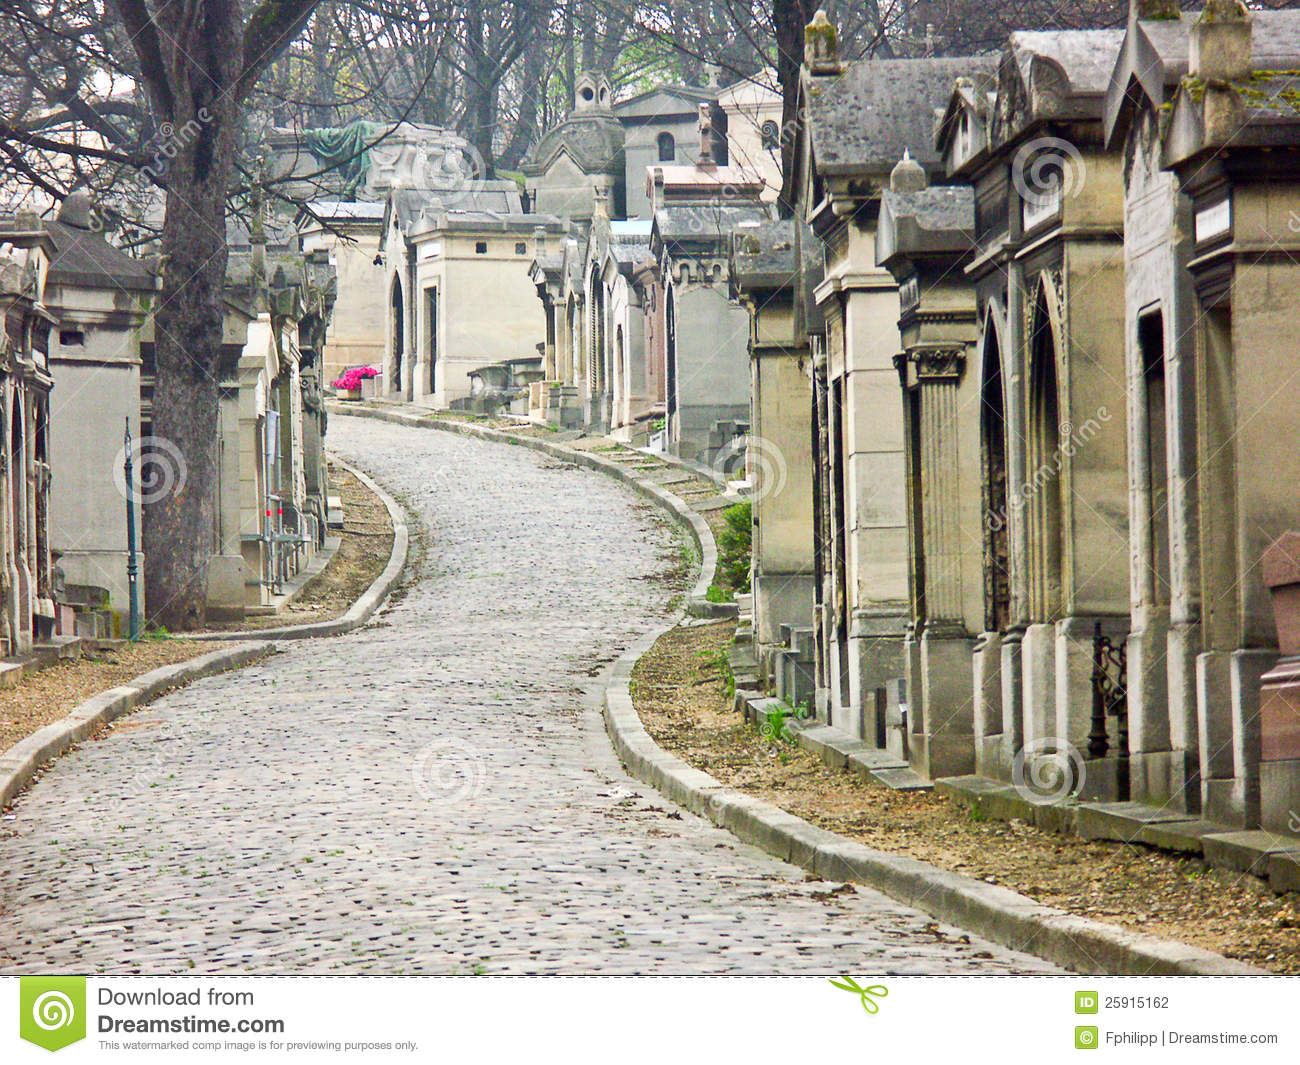 Cemetery of pere lachaise paris france stock photo for Chaise francaise